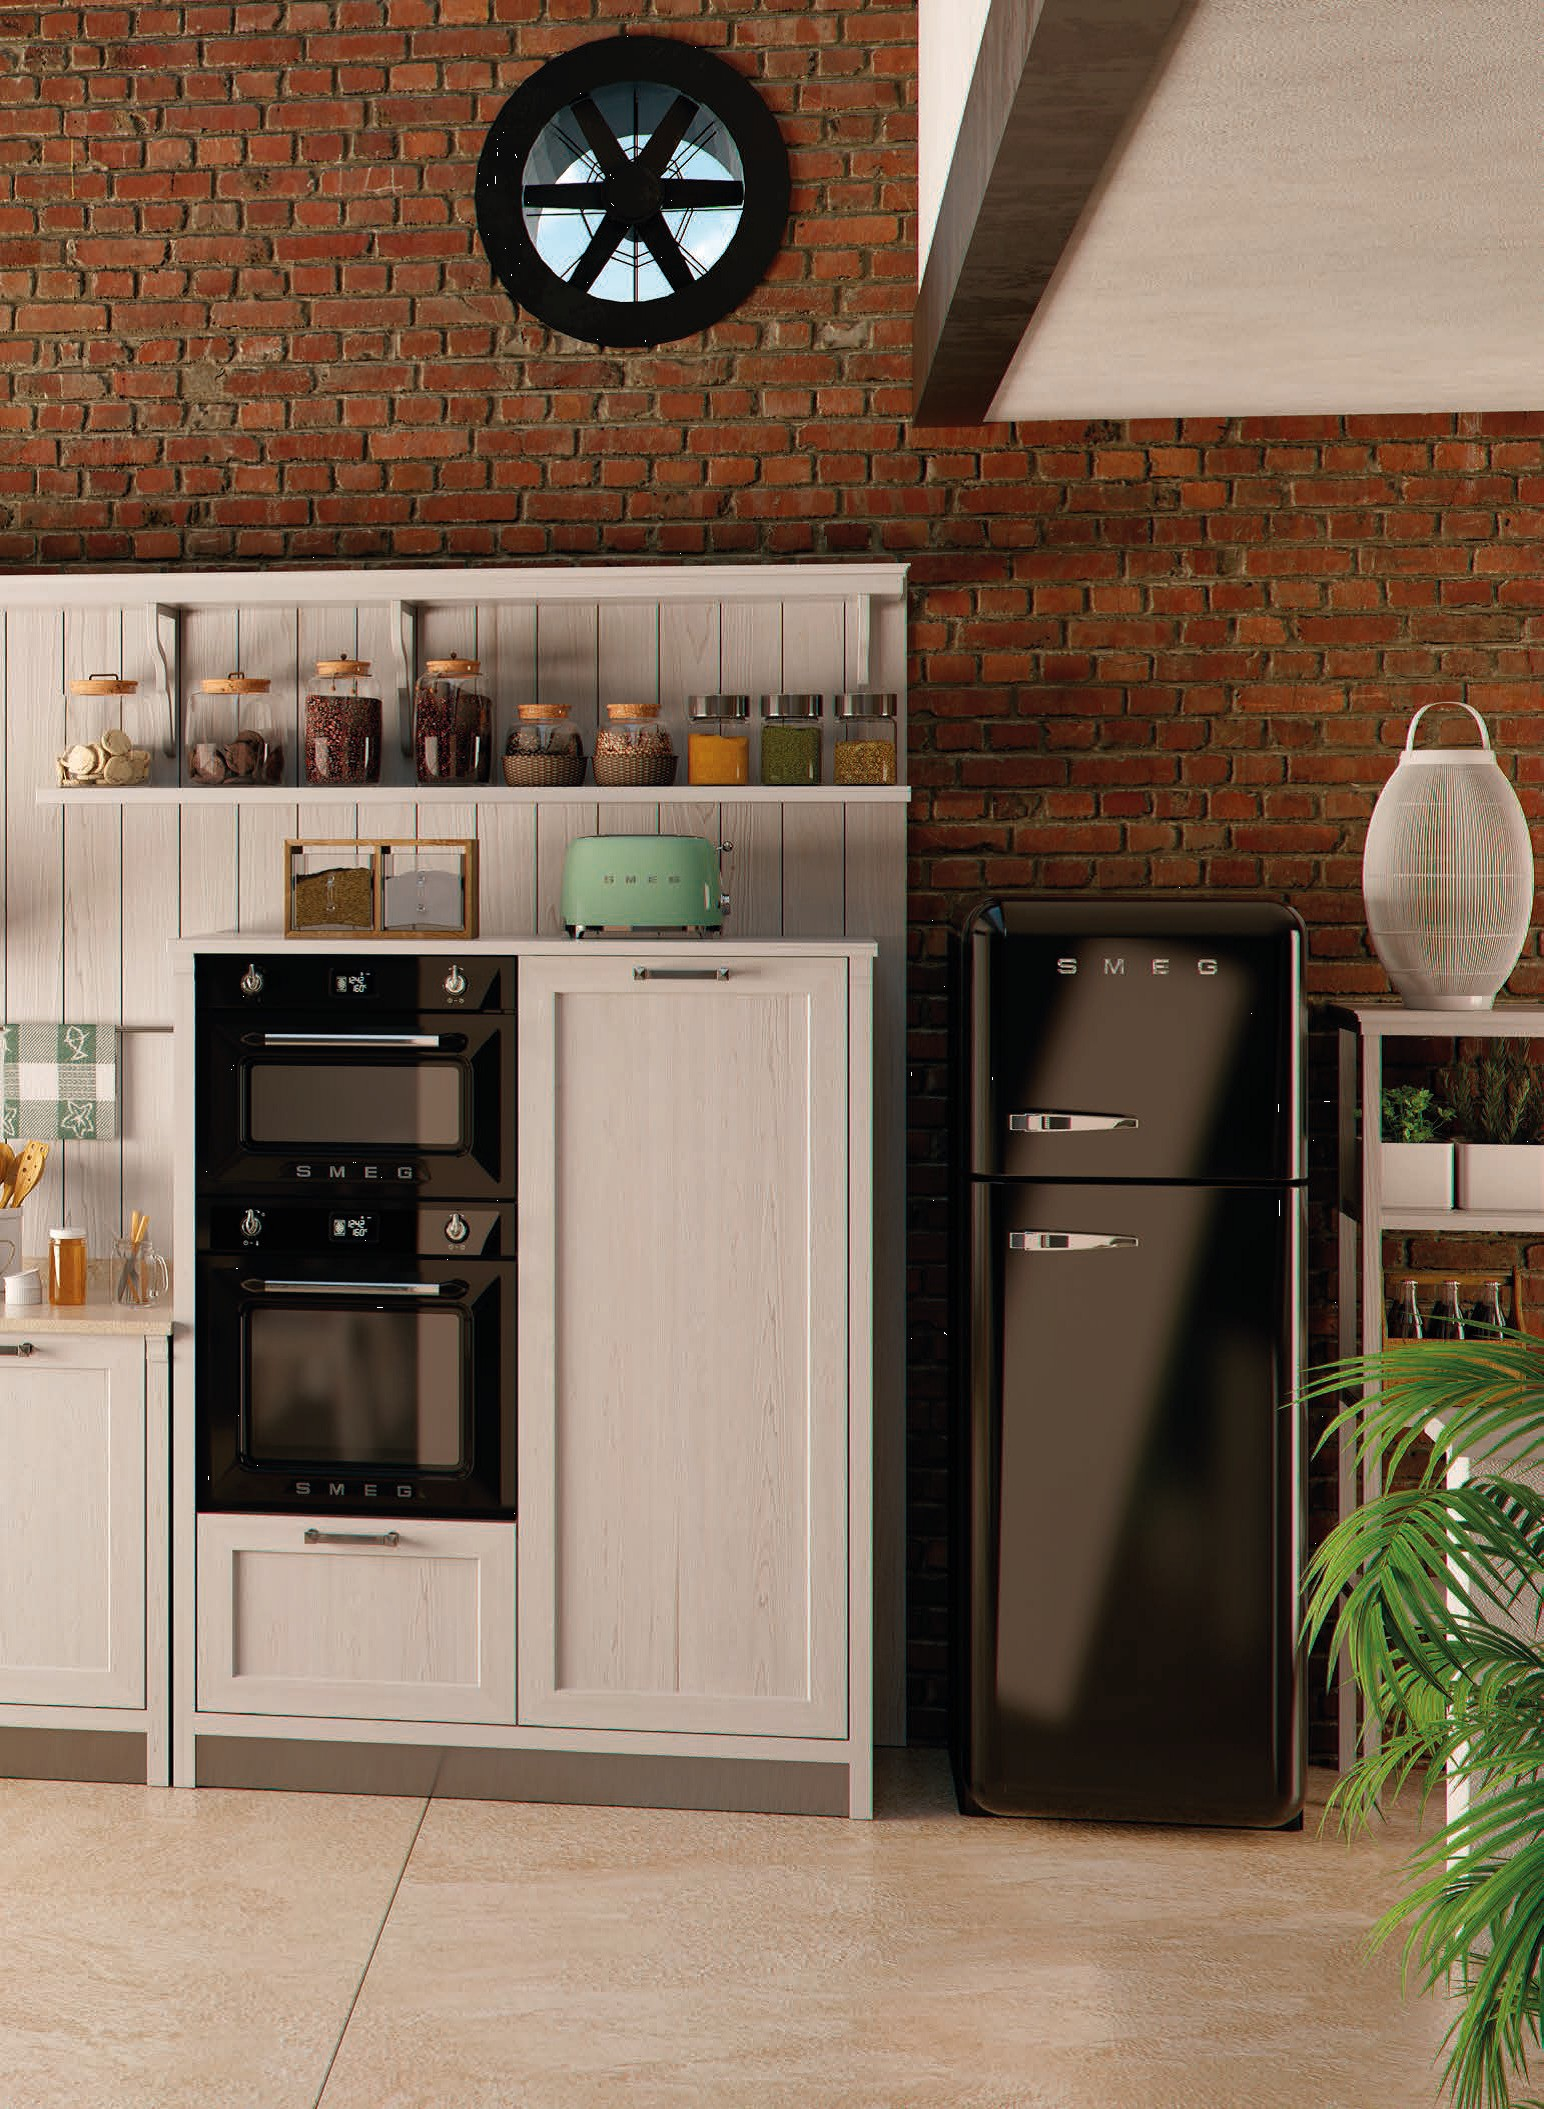 SMEG fridges and other kitchen appliance - Viskas apie